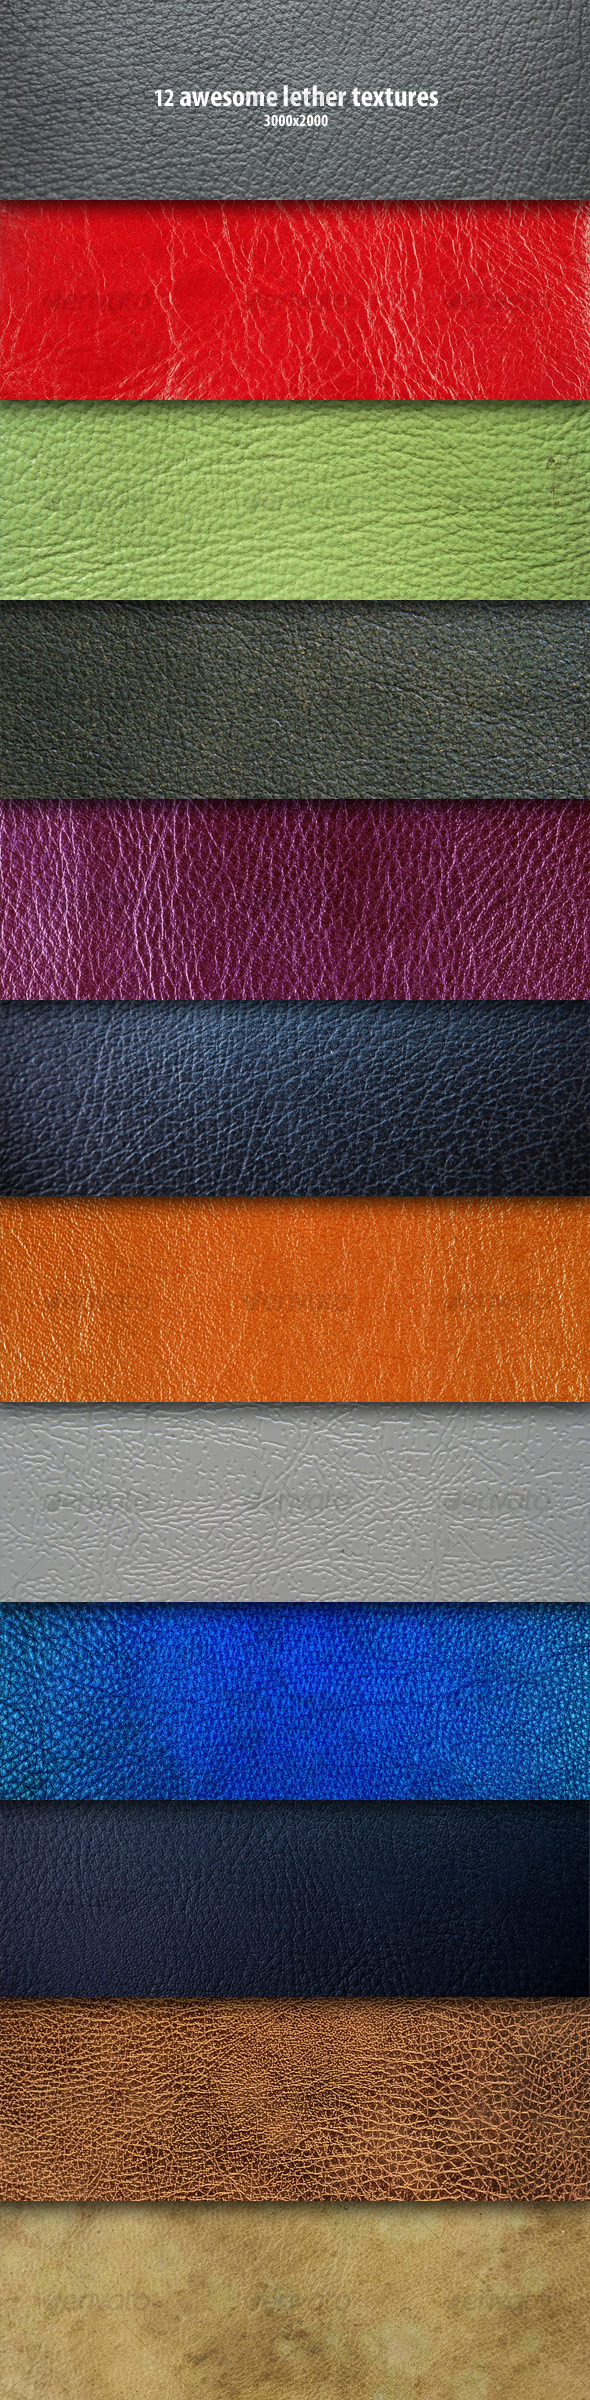 12 Lether Textures - Fabric Textures